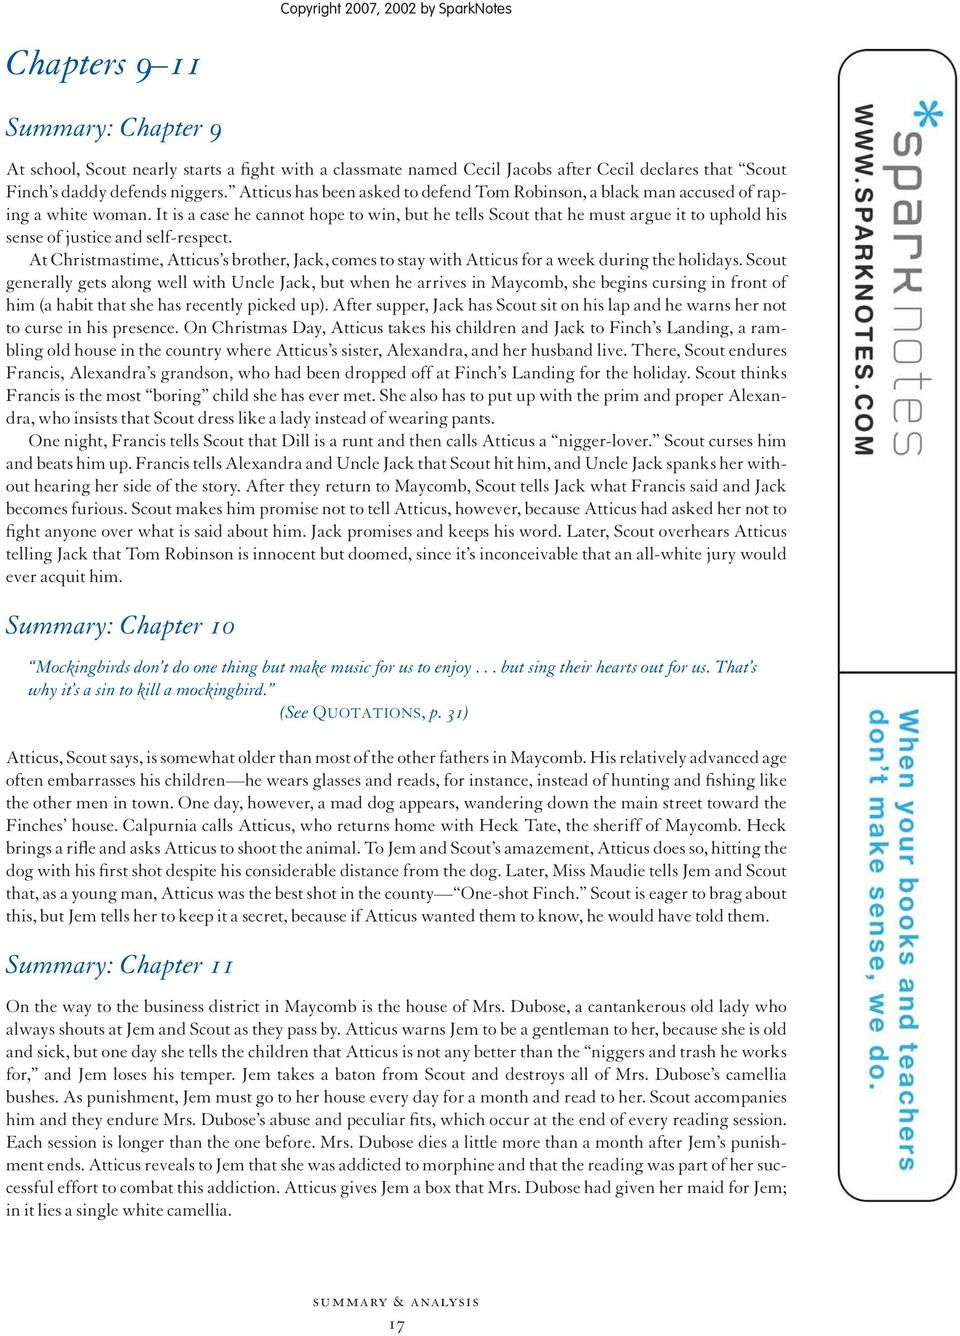 to kill a mockingbird chapter 12 sparknotes